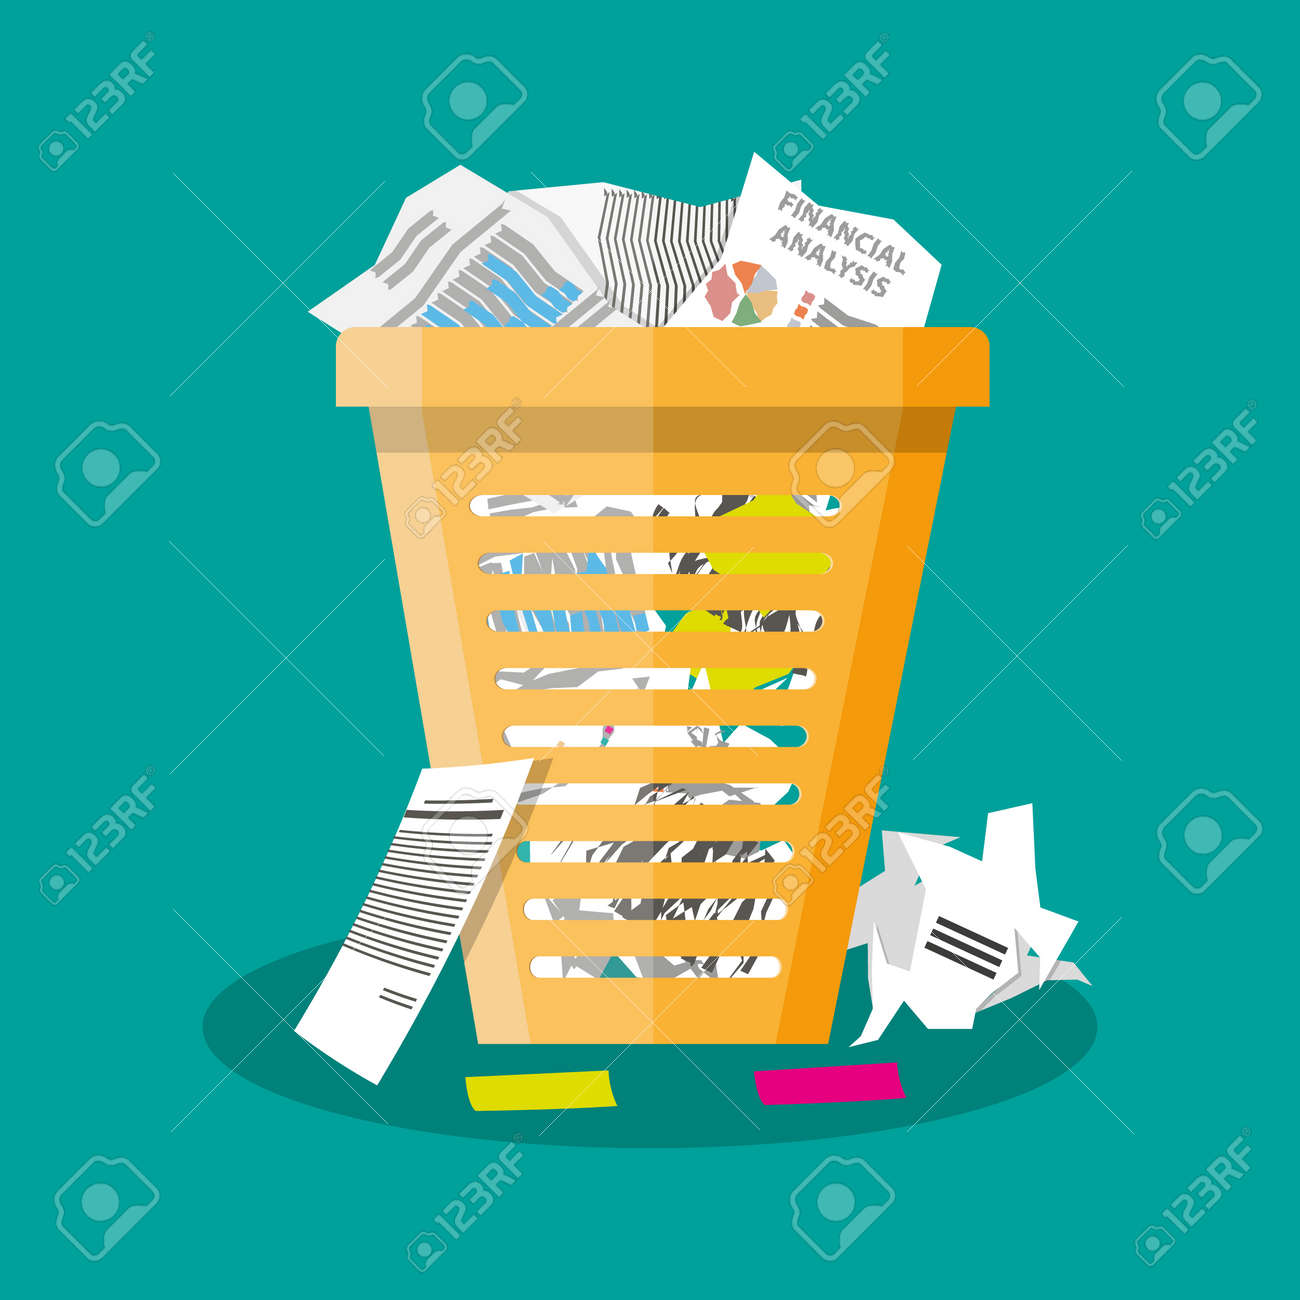 Cartoon office trash recycle bin for garbage. Bin for papers. Vector illustration in flat design on green background - 55002995